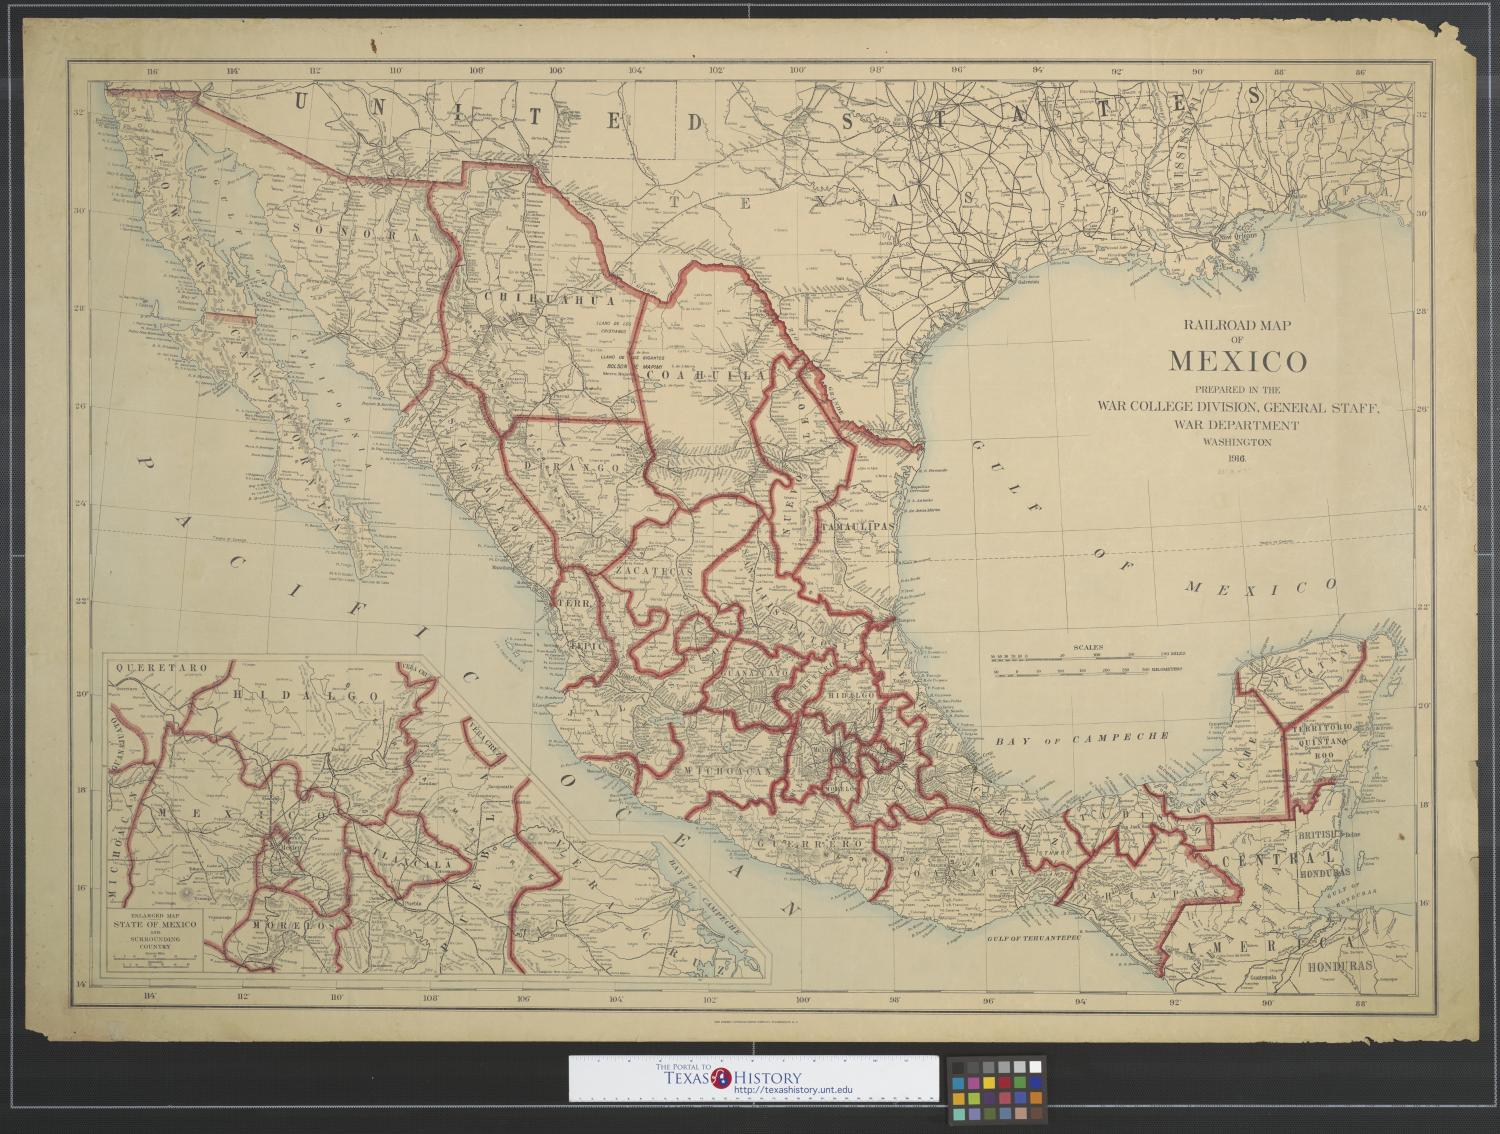 Railroad map of Mexico.                                                                                                      [Sequence #]: 1 of 2